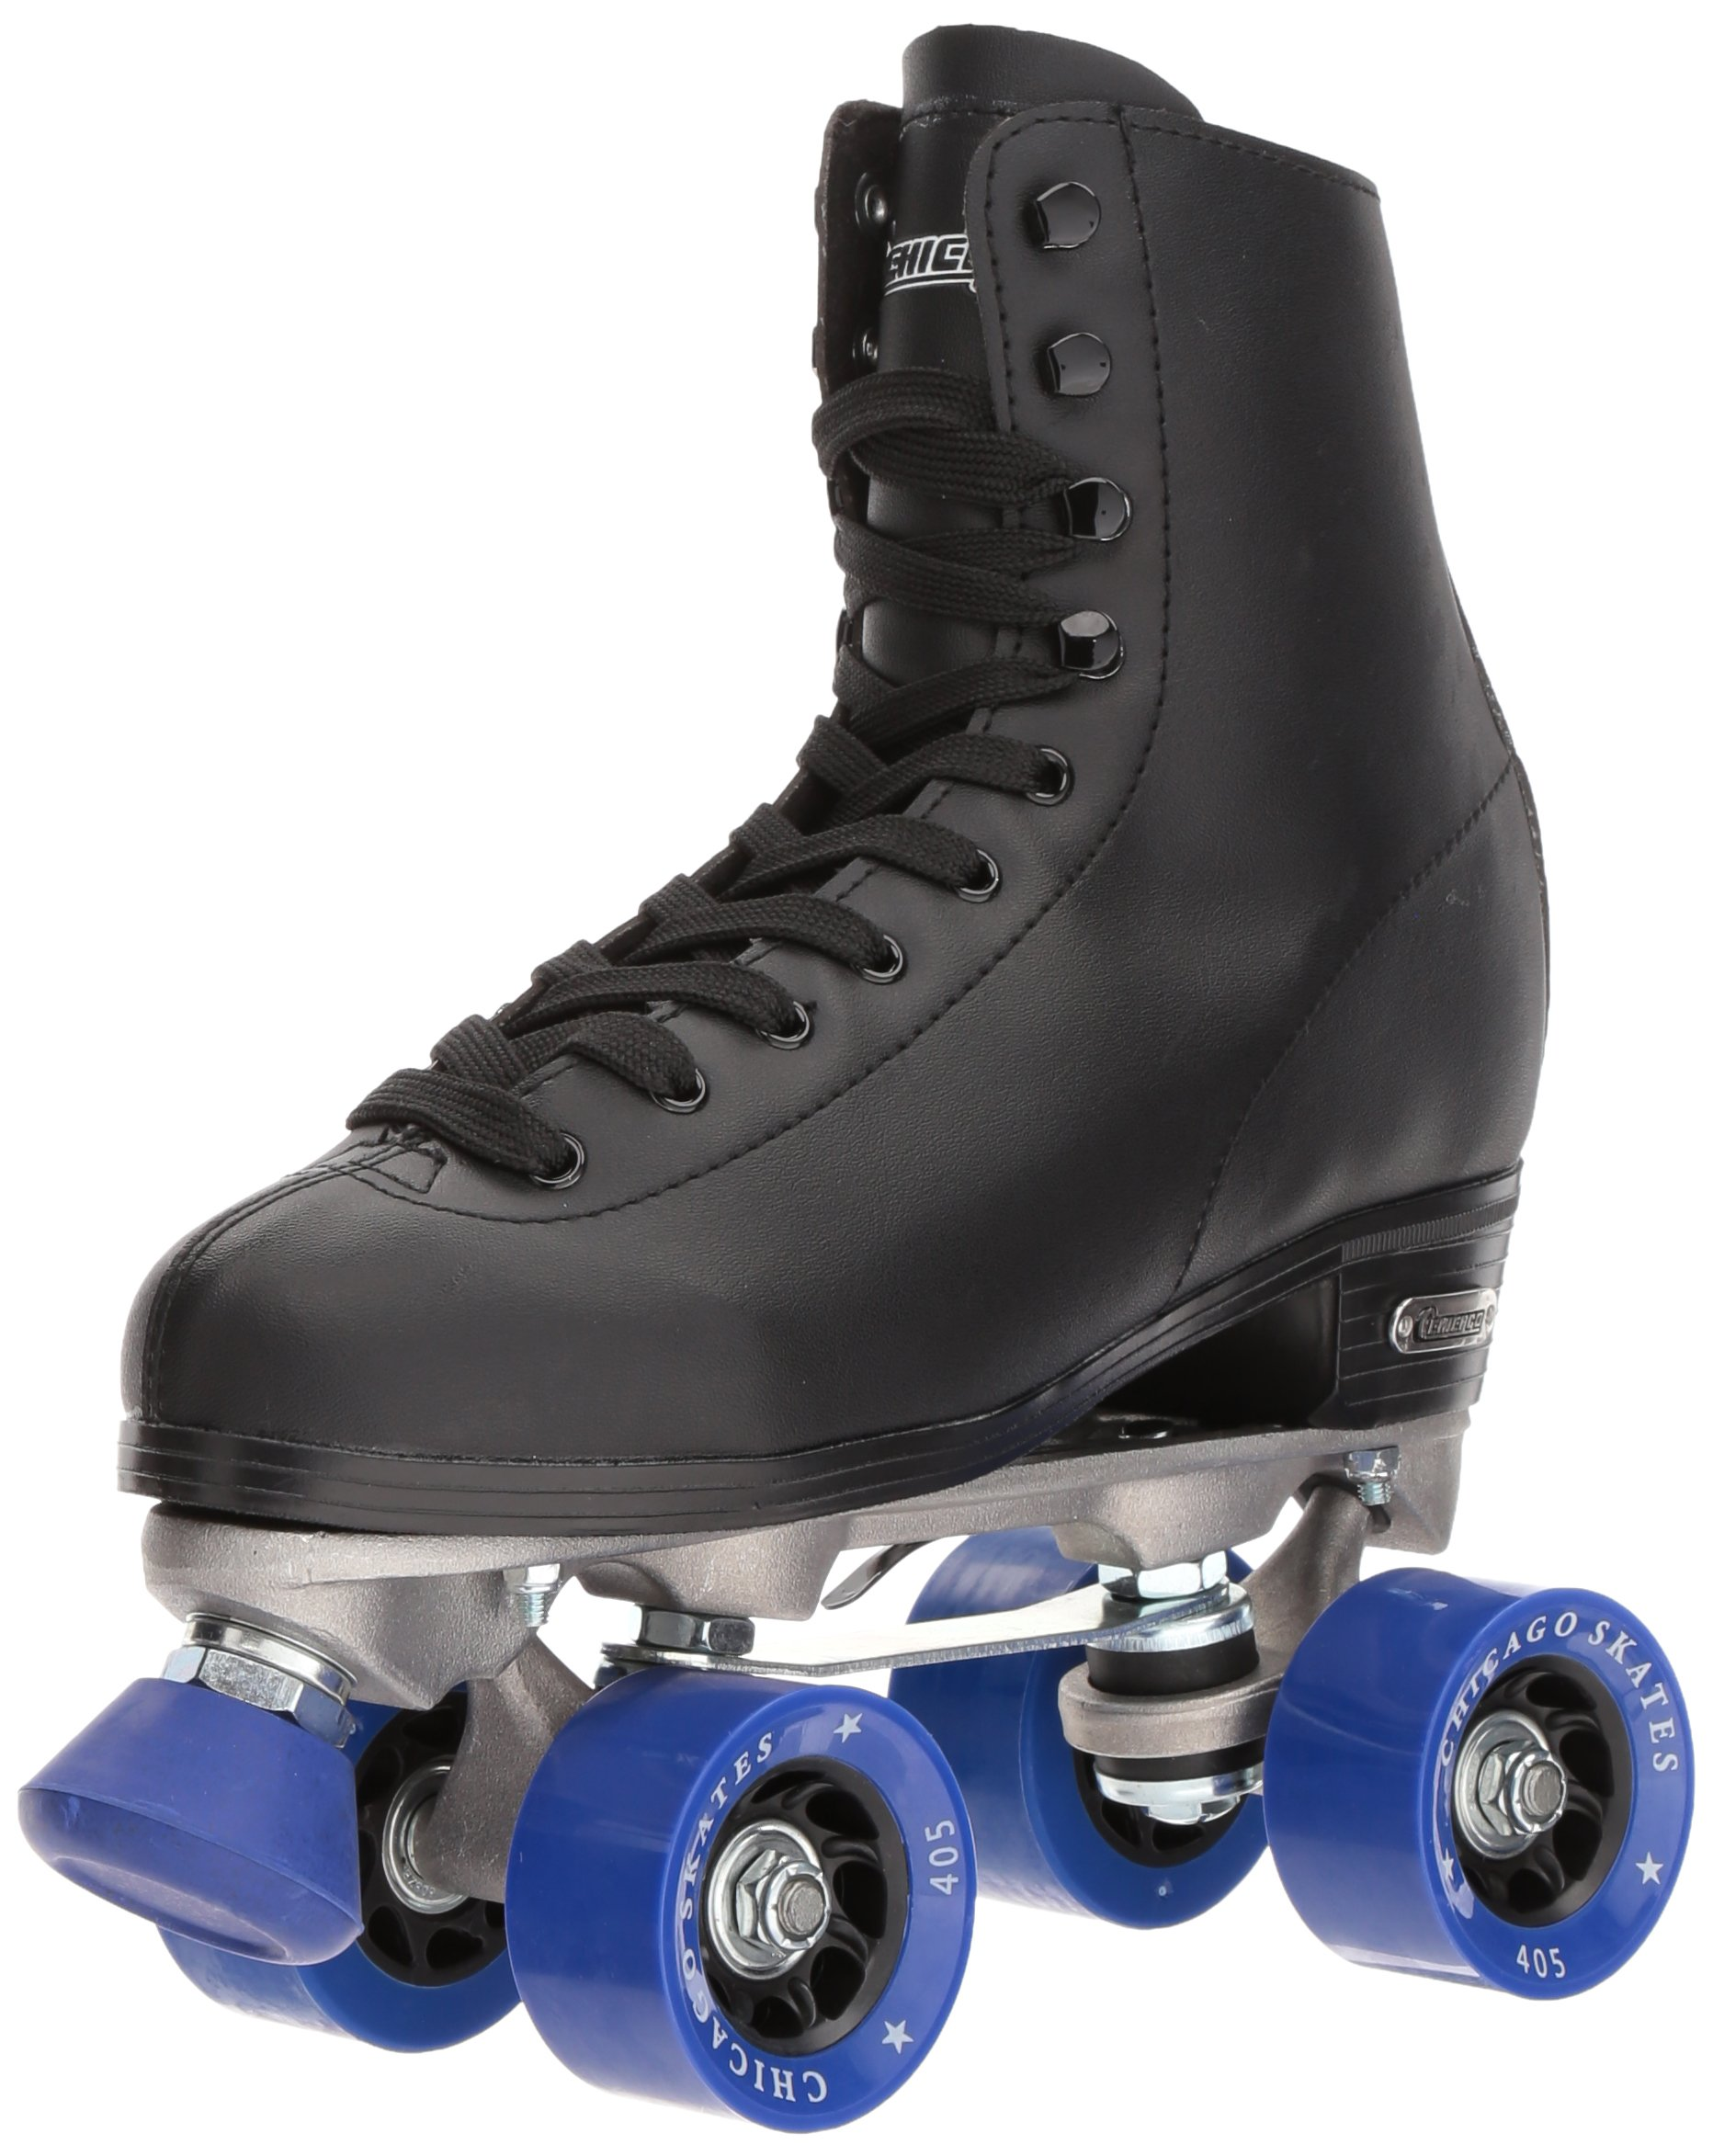 Chicago 405 Mens Outdoor Skates with Black Aerobic Wheels